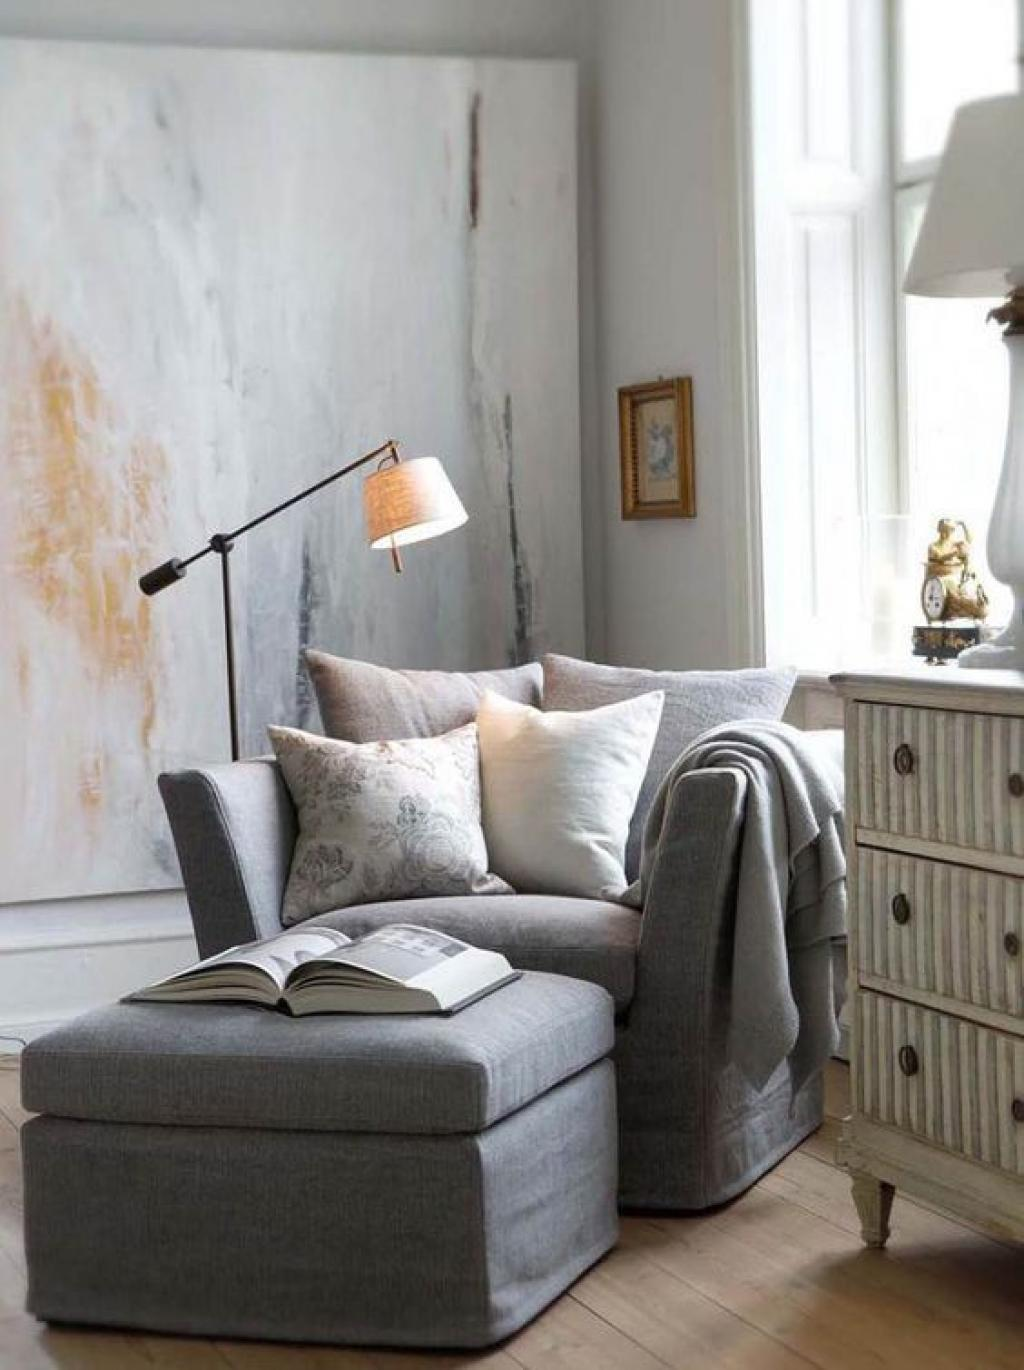 Comfy Grey Reading Chair with ottoman